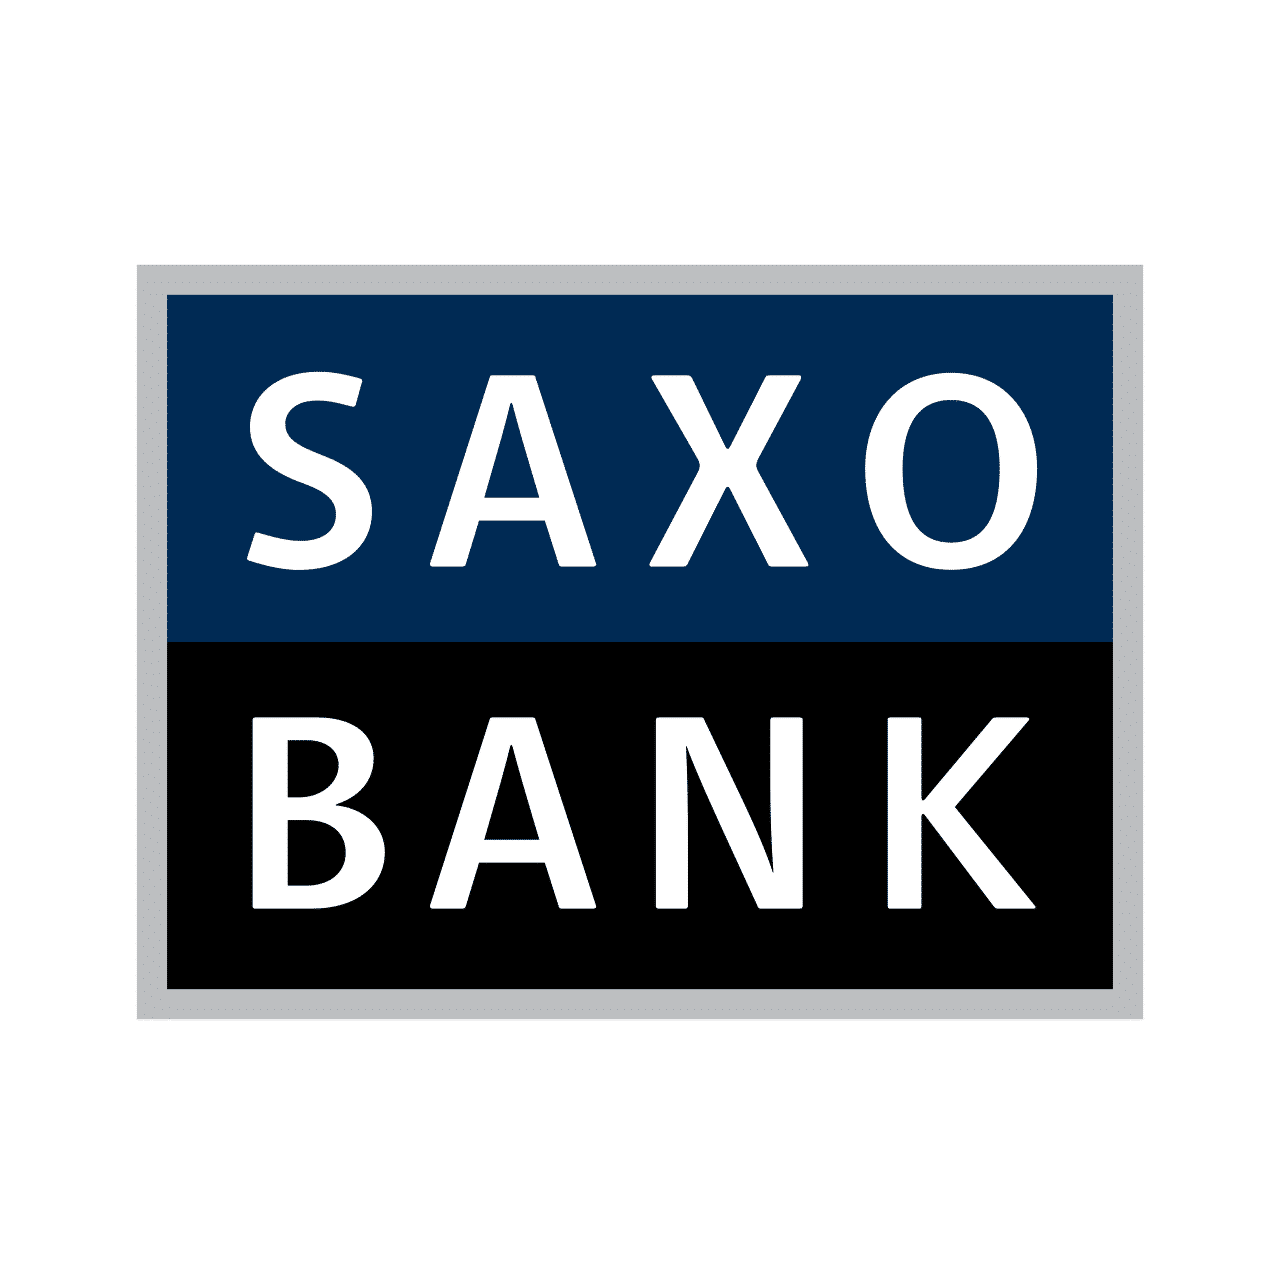 Saxo bank stock options